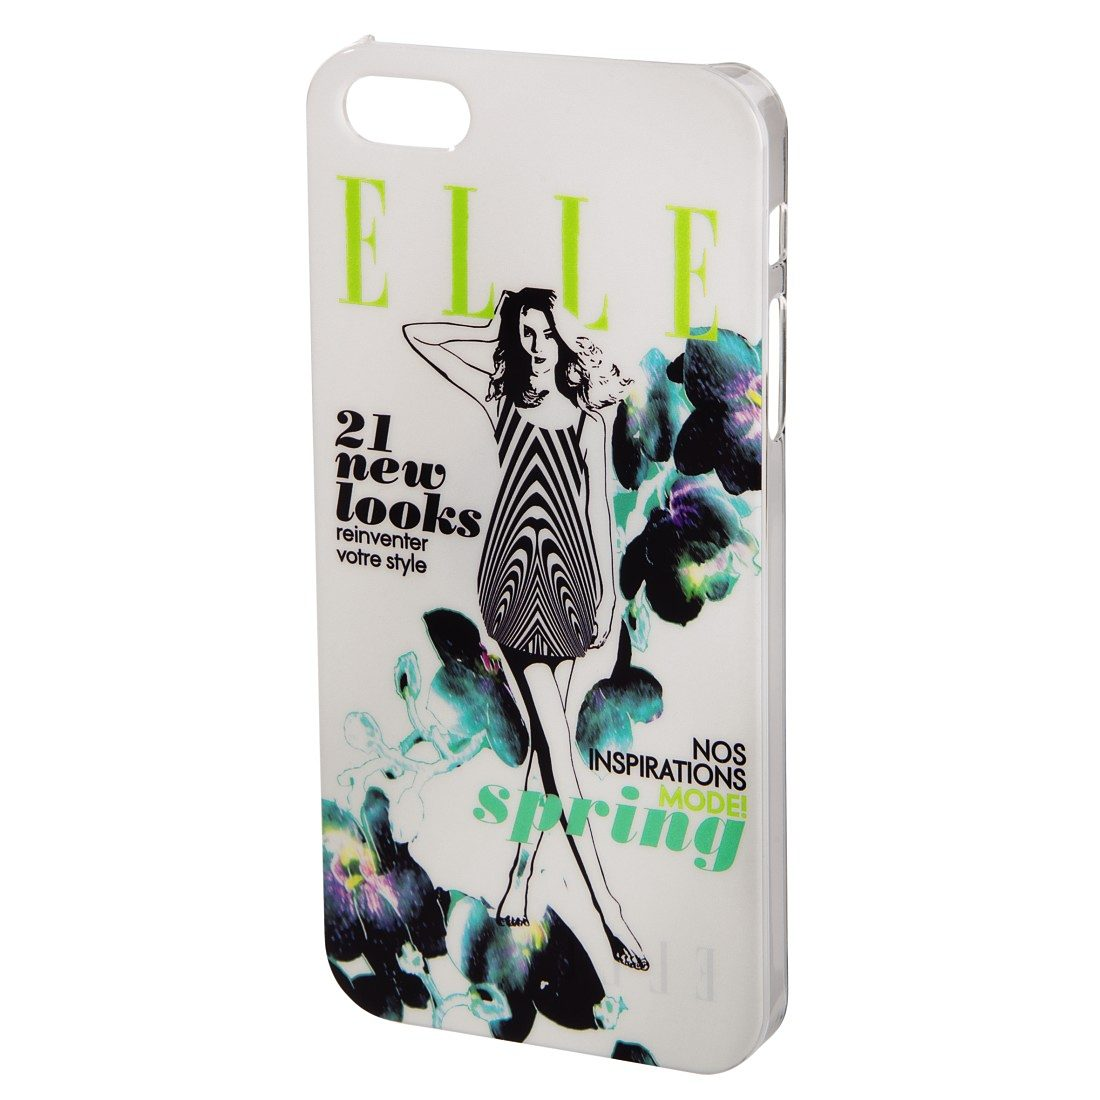 ELLE Cover Spring Feeling für Apple iPhone 5/5s/SE, Weiß